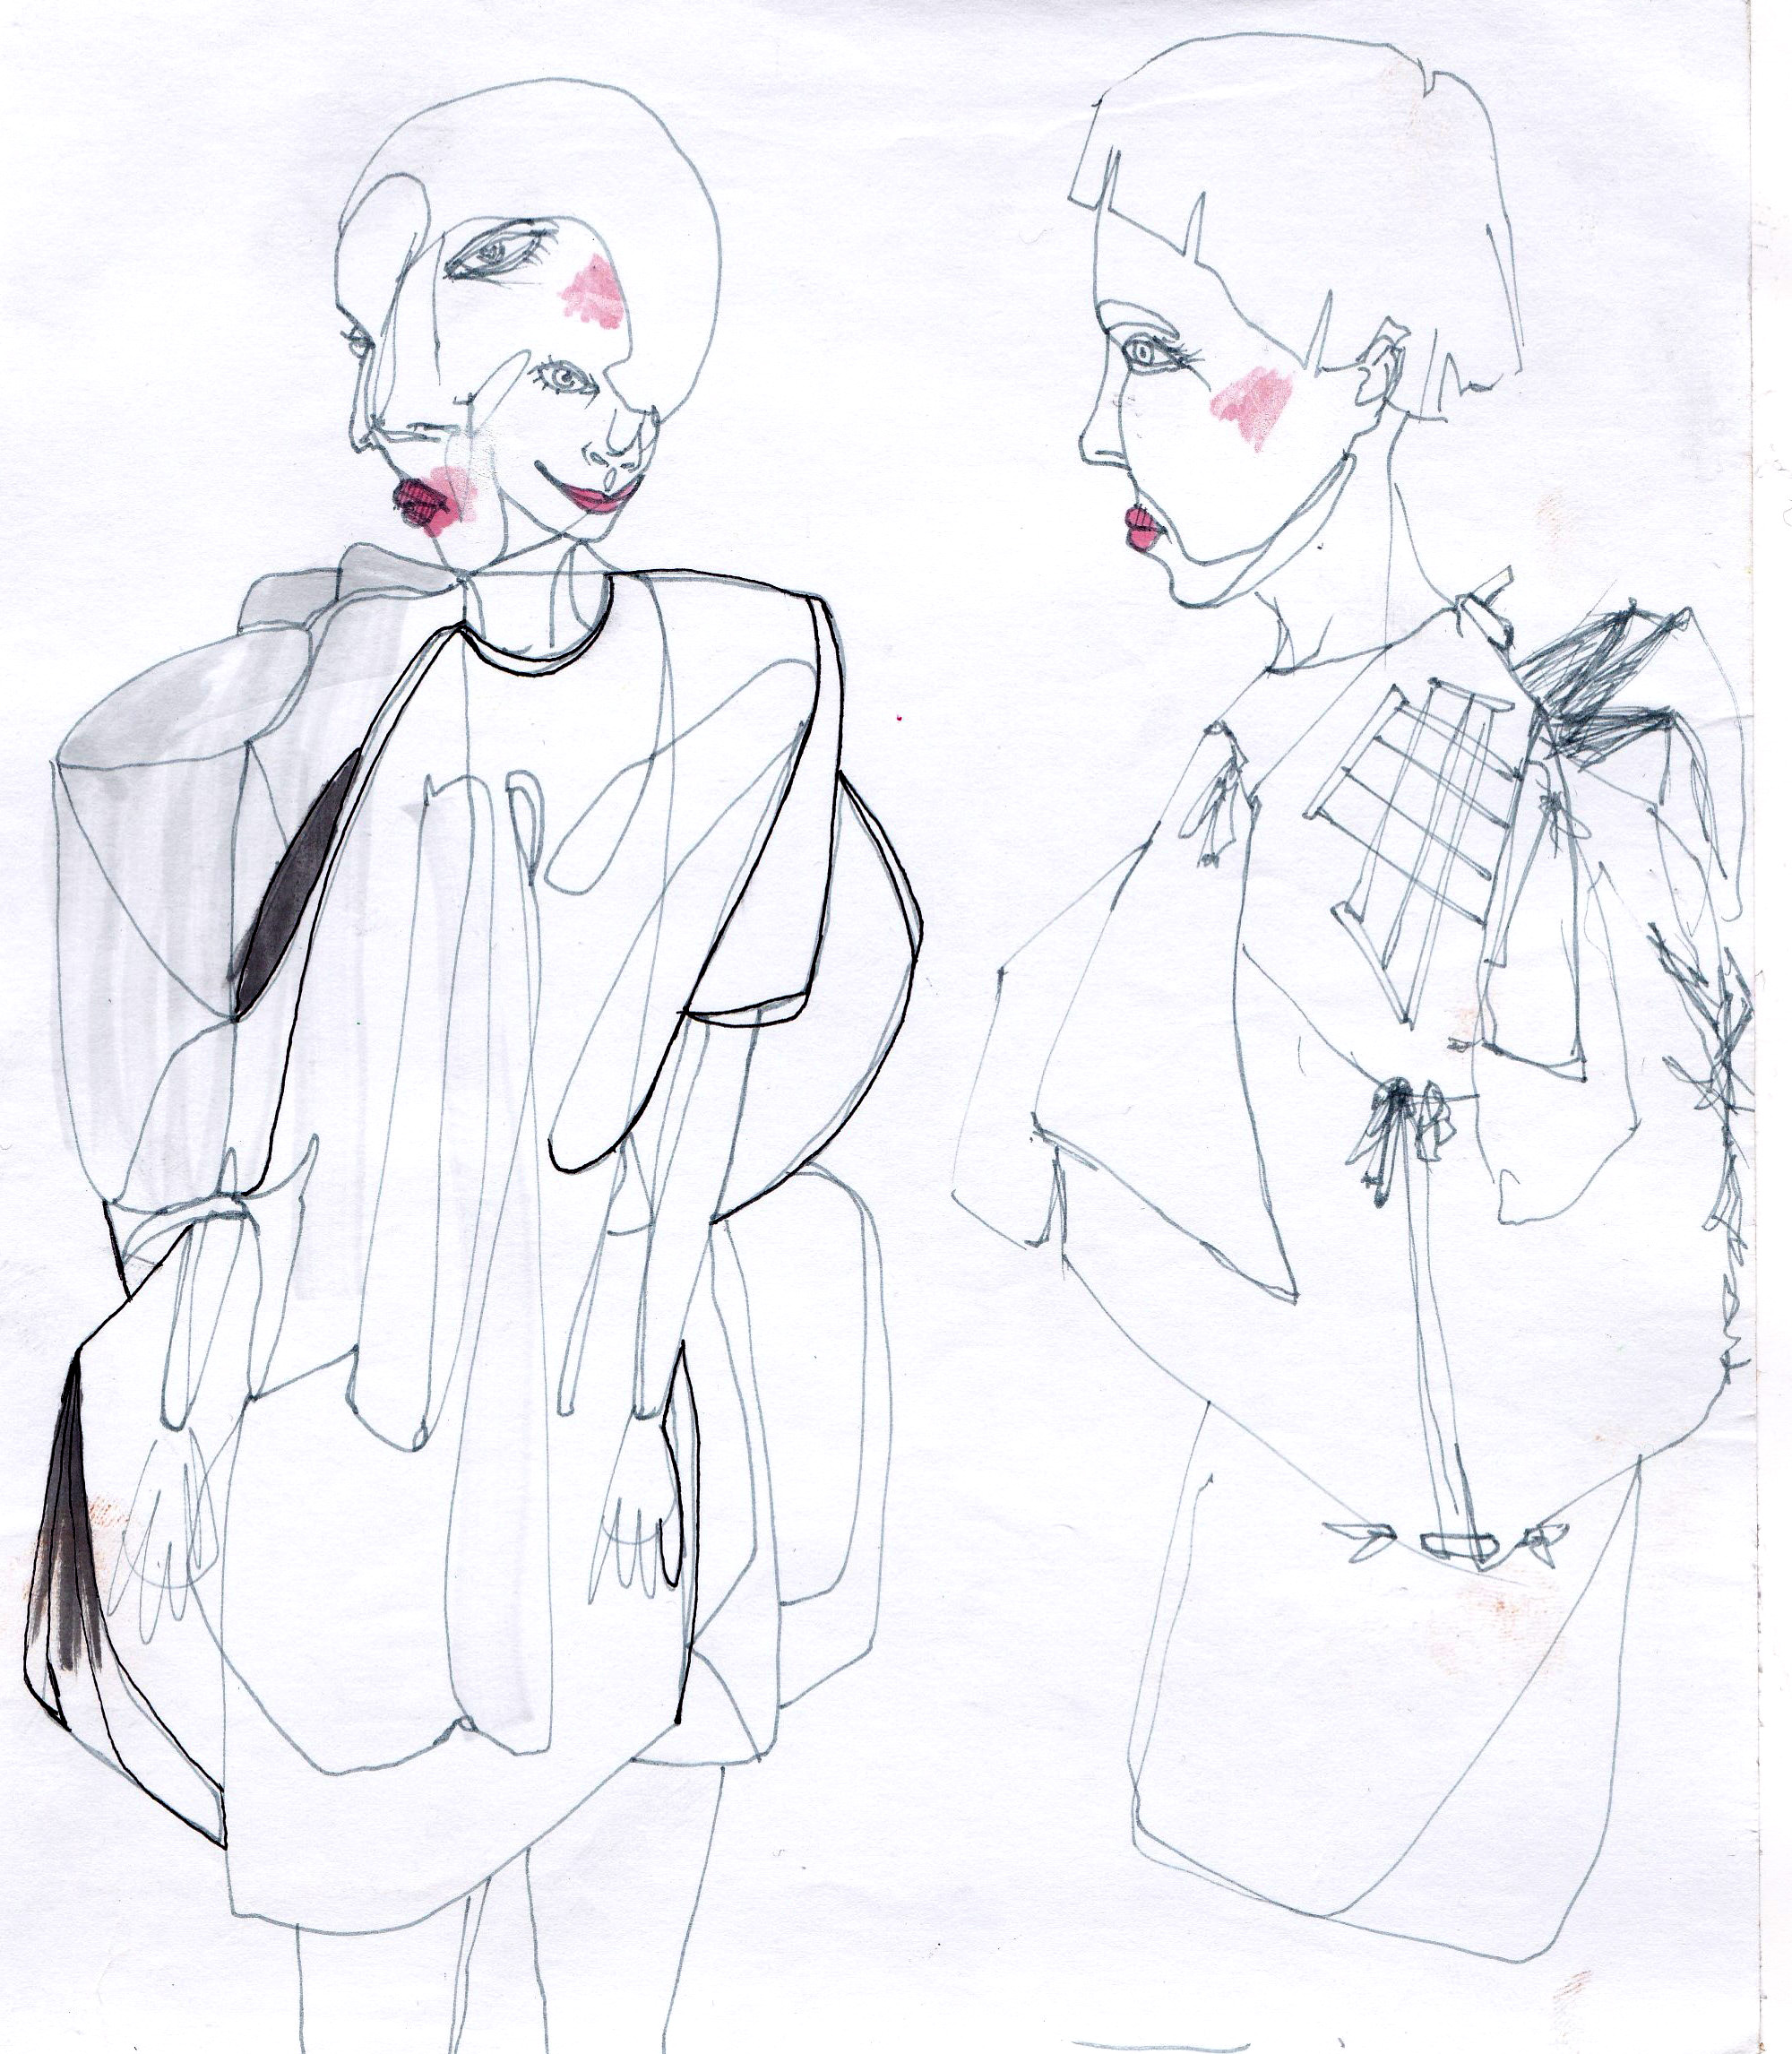 Sketches by Quoi Alexander